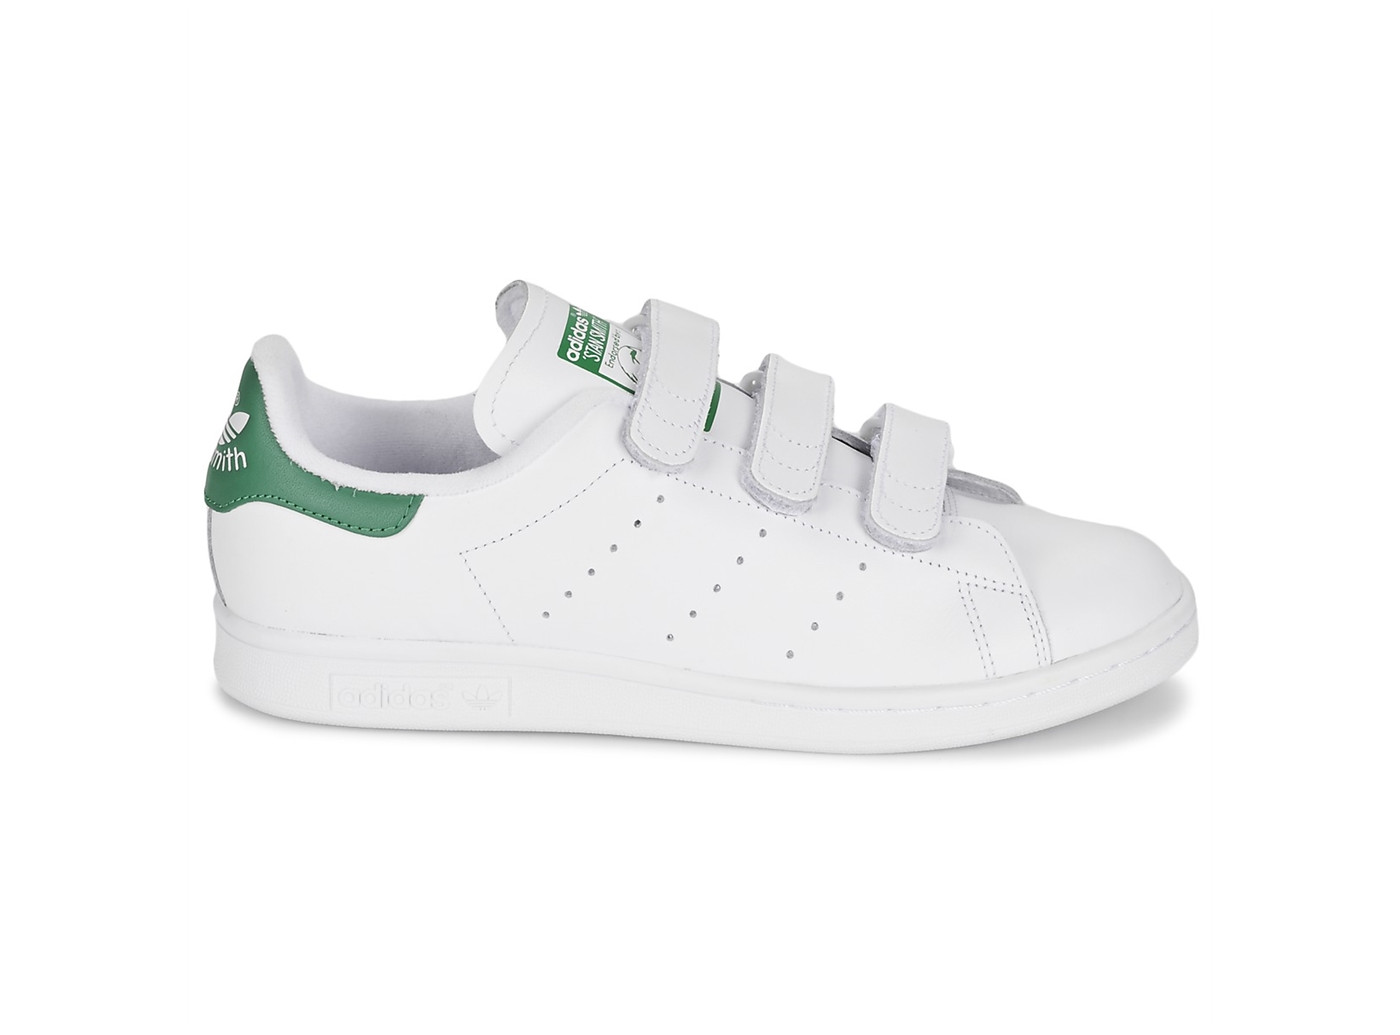 adidas stan smith scrach